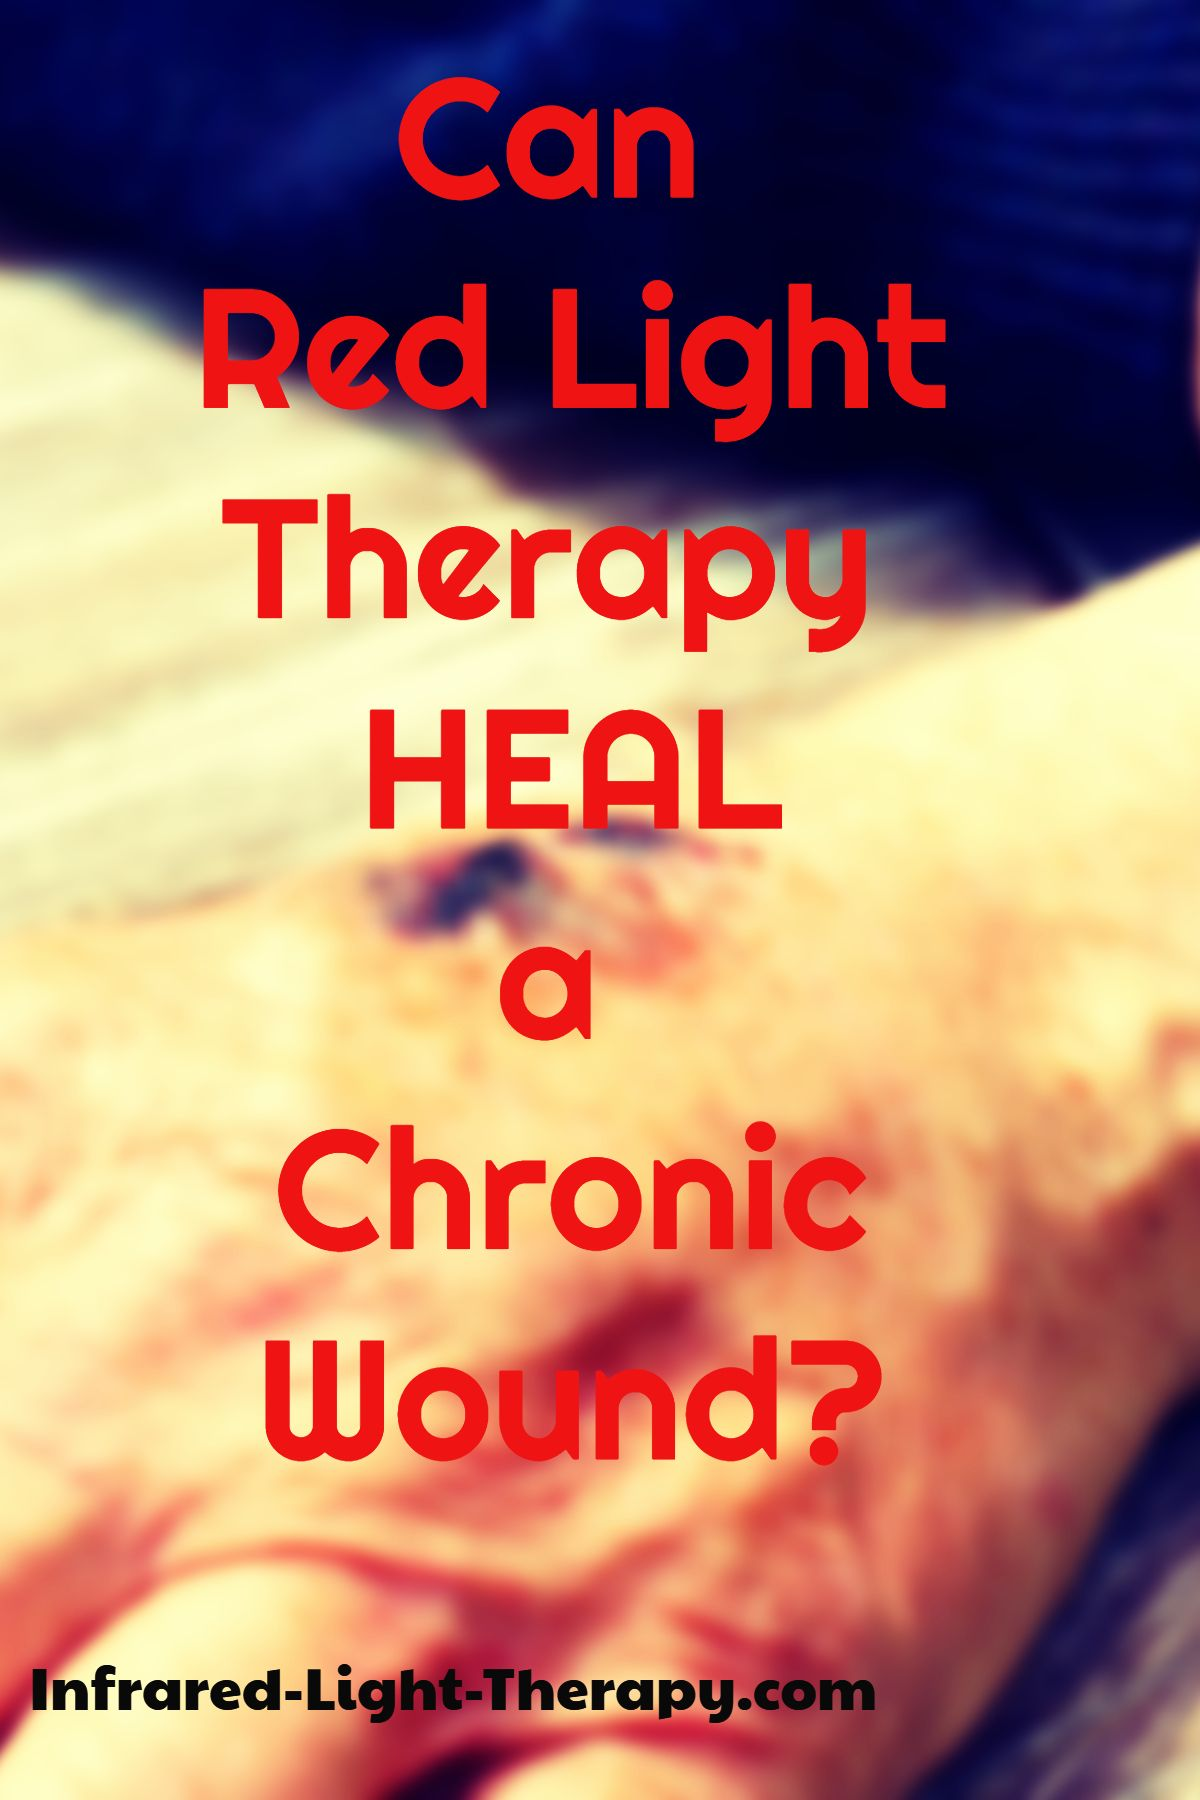 How to Use Red Light Therapy for FASTER Wound Healing (At Home